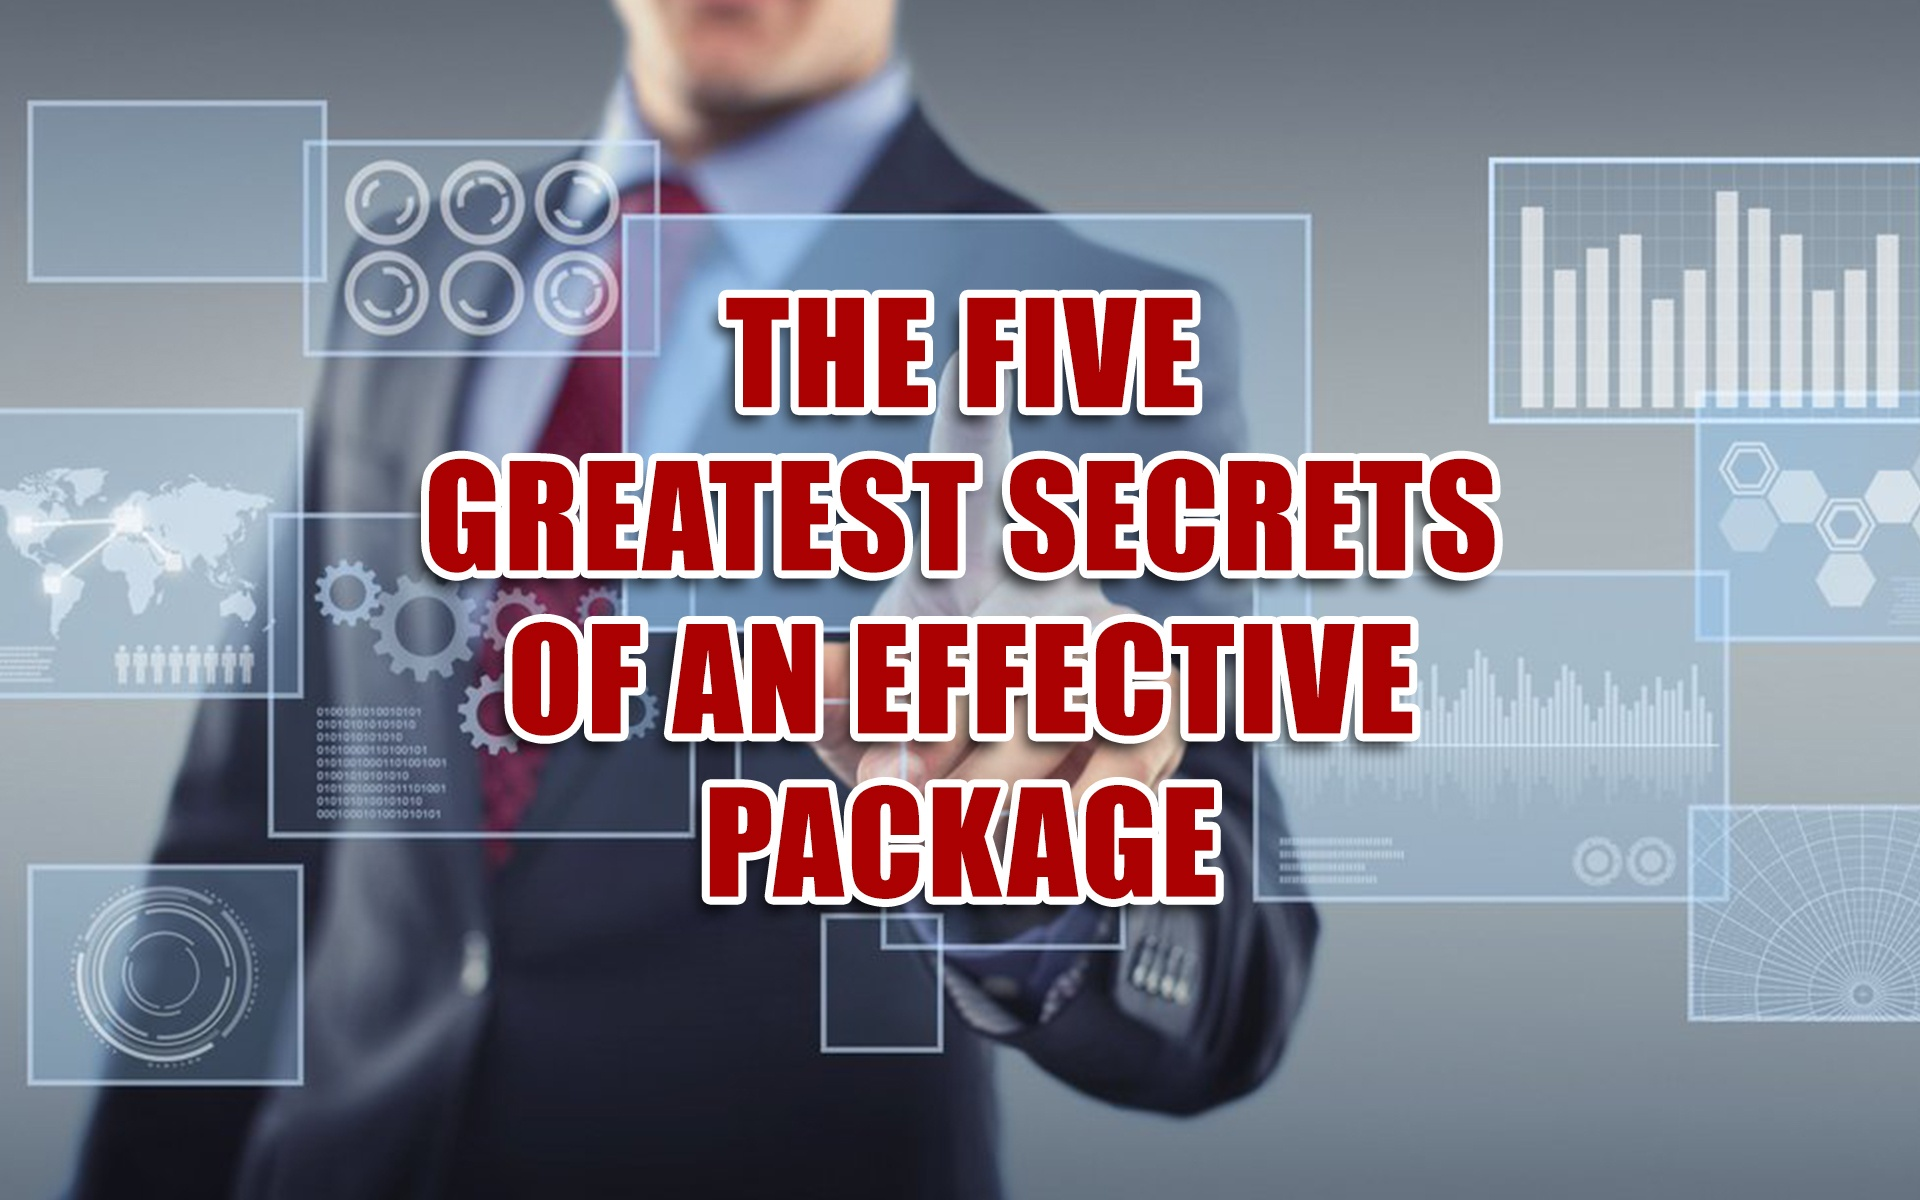 The Five Greatest Secrets of an Effective Package